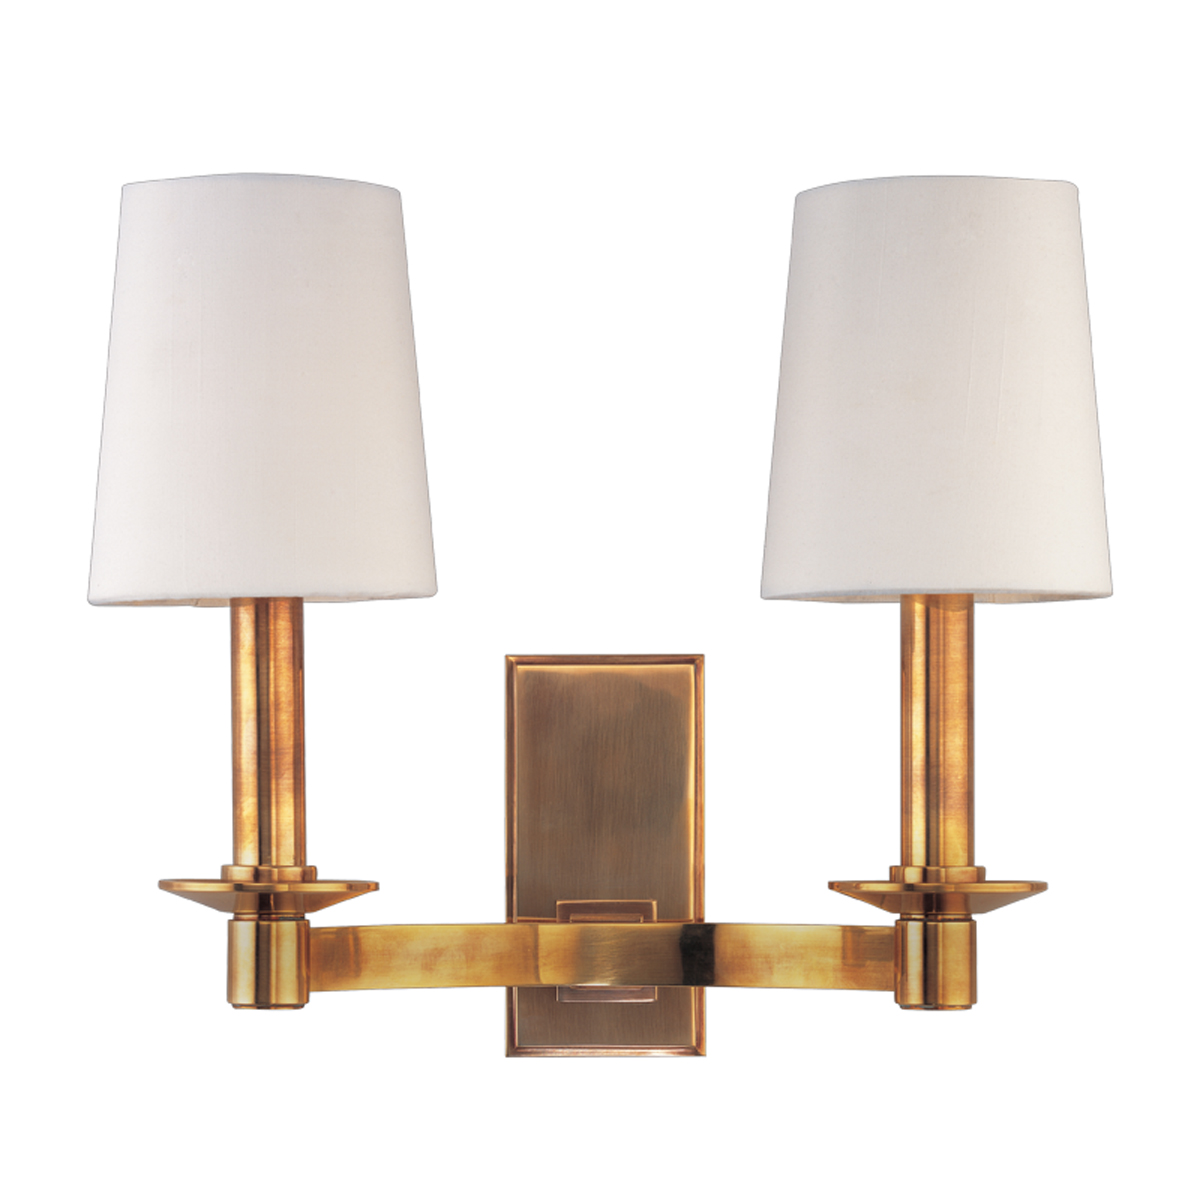 Aged Brass Wall Sconces : Hudson Valley Lighting (152) Spencer 2 Light Wall Sconce shown in Aged Brass